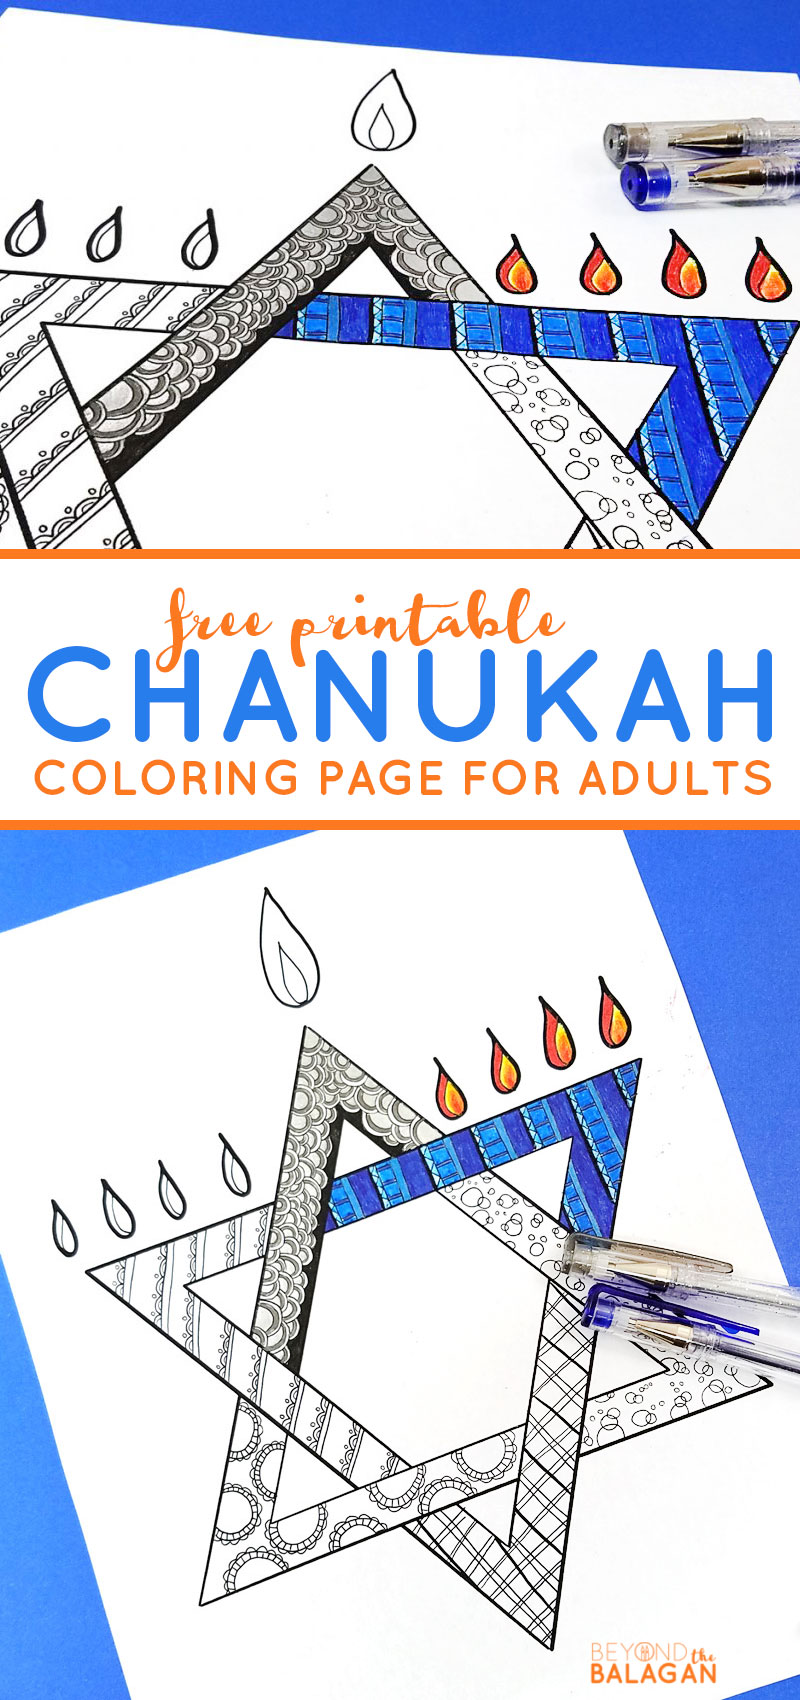 Chanukah Coloring Page for Adults - Beyond the Balagan